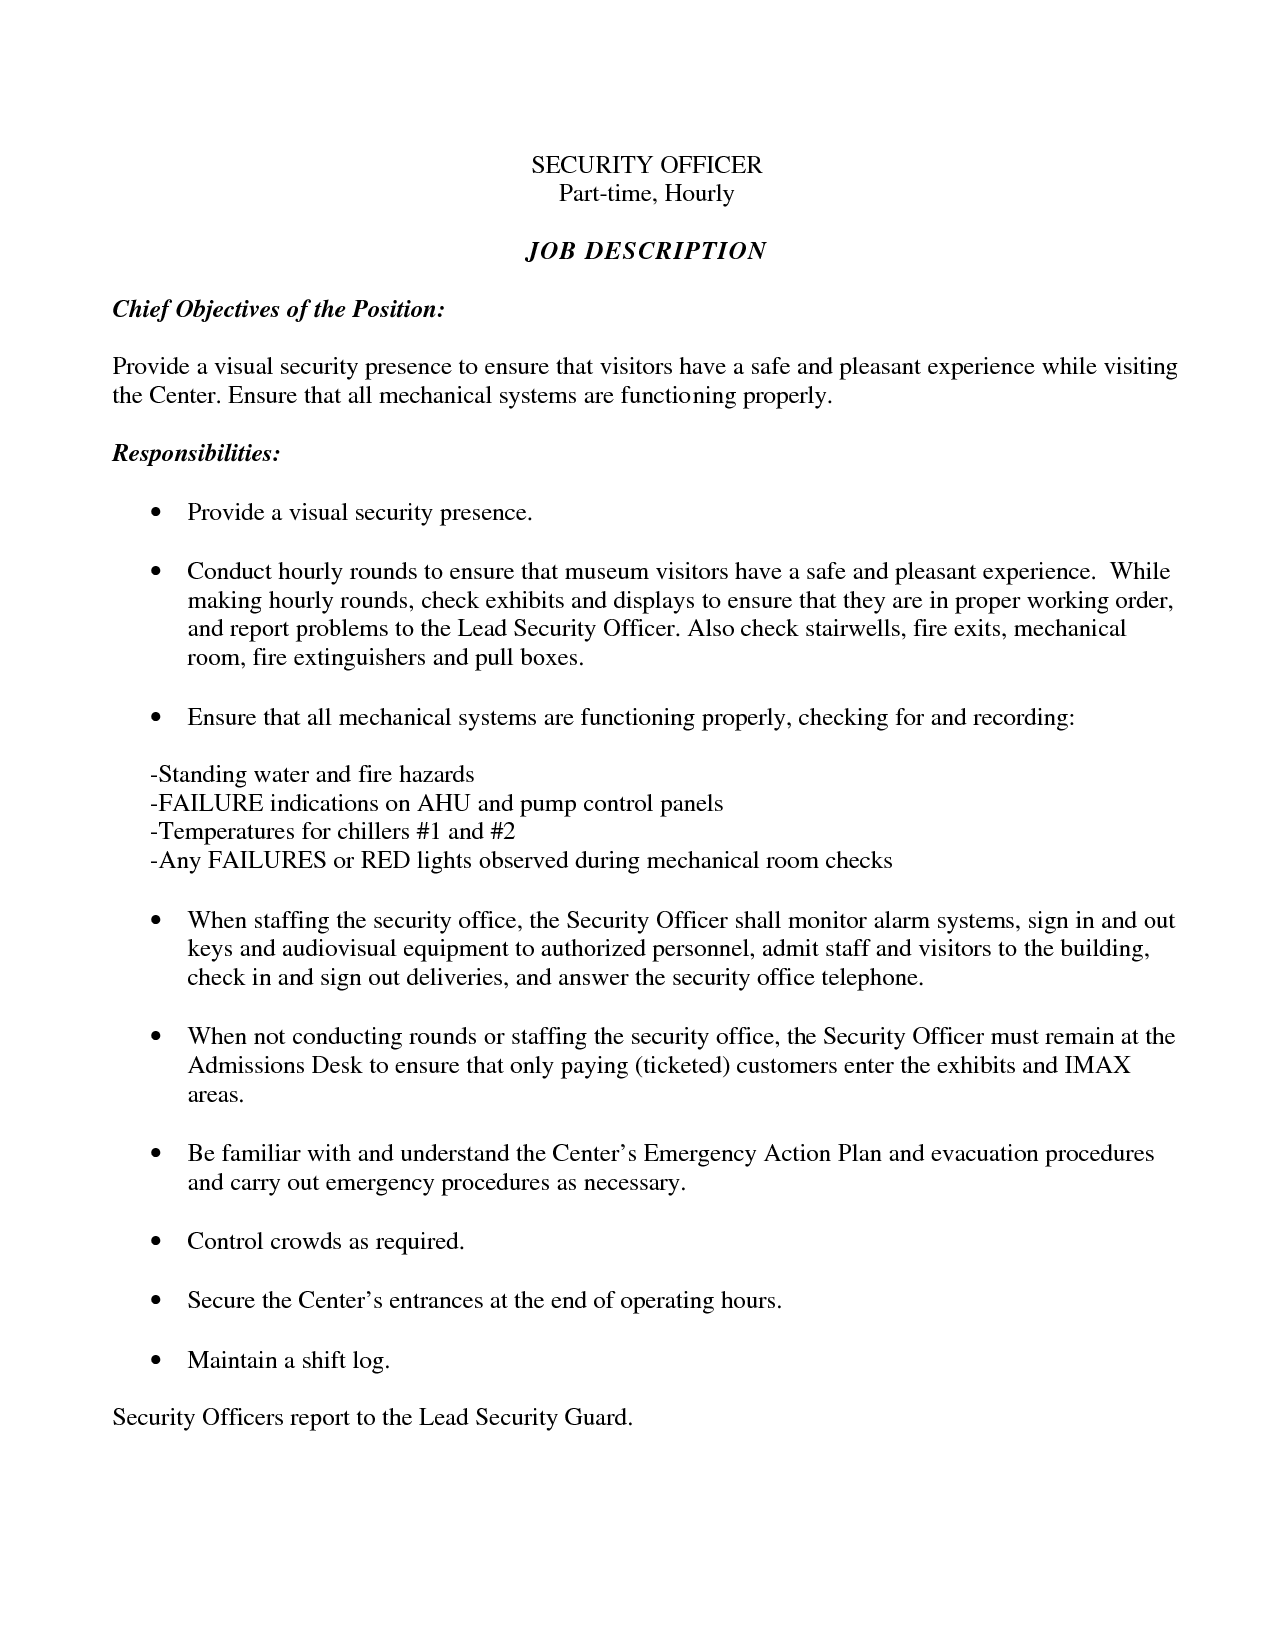 sample resume format for security guard resume for security guard security guard resume objective security - Security Guard Resume Objective